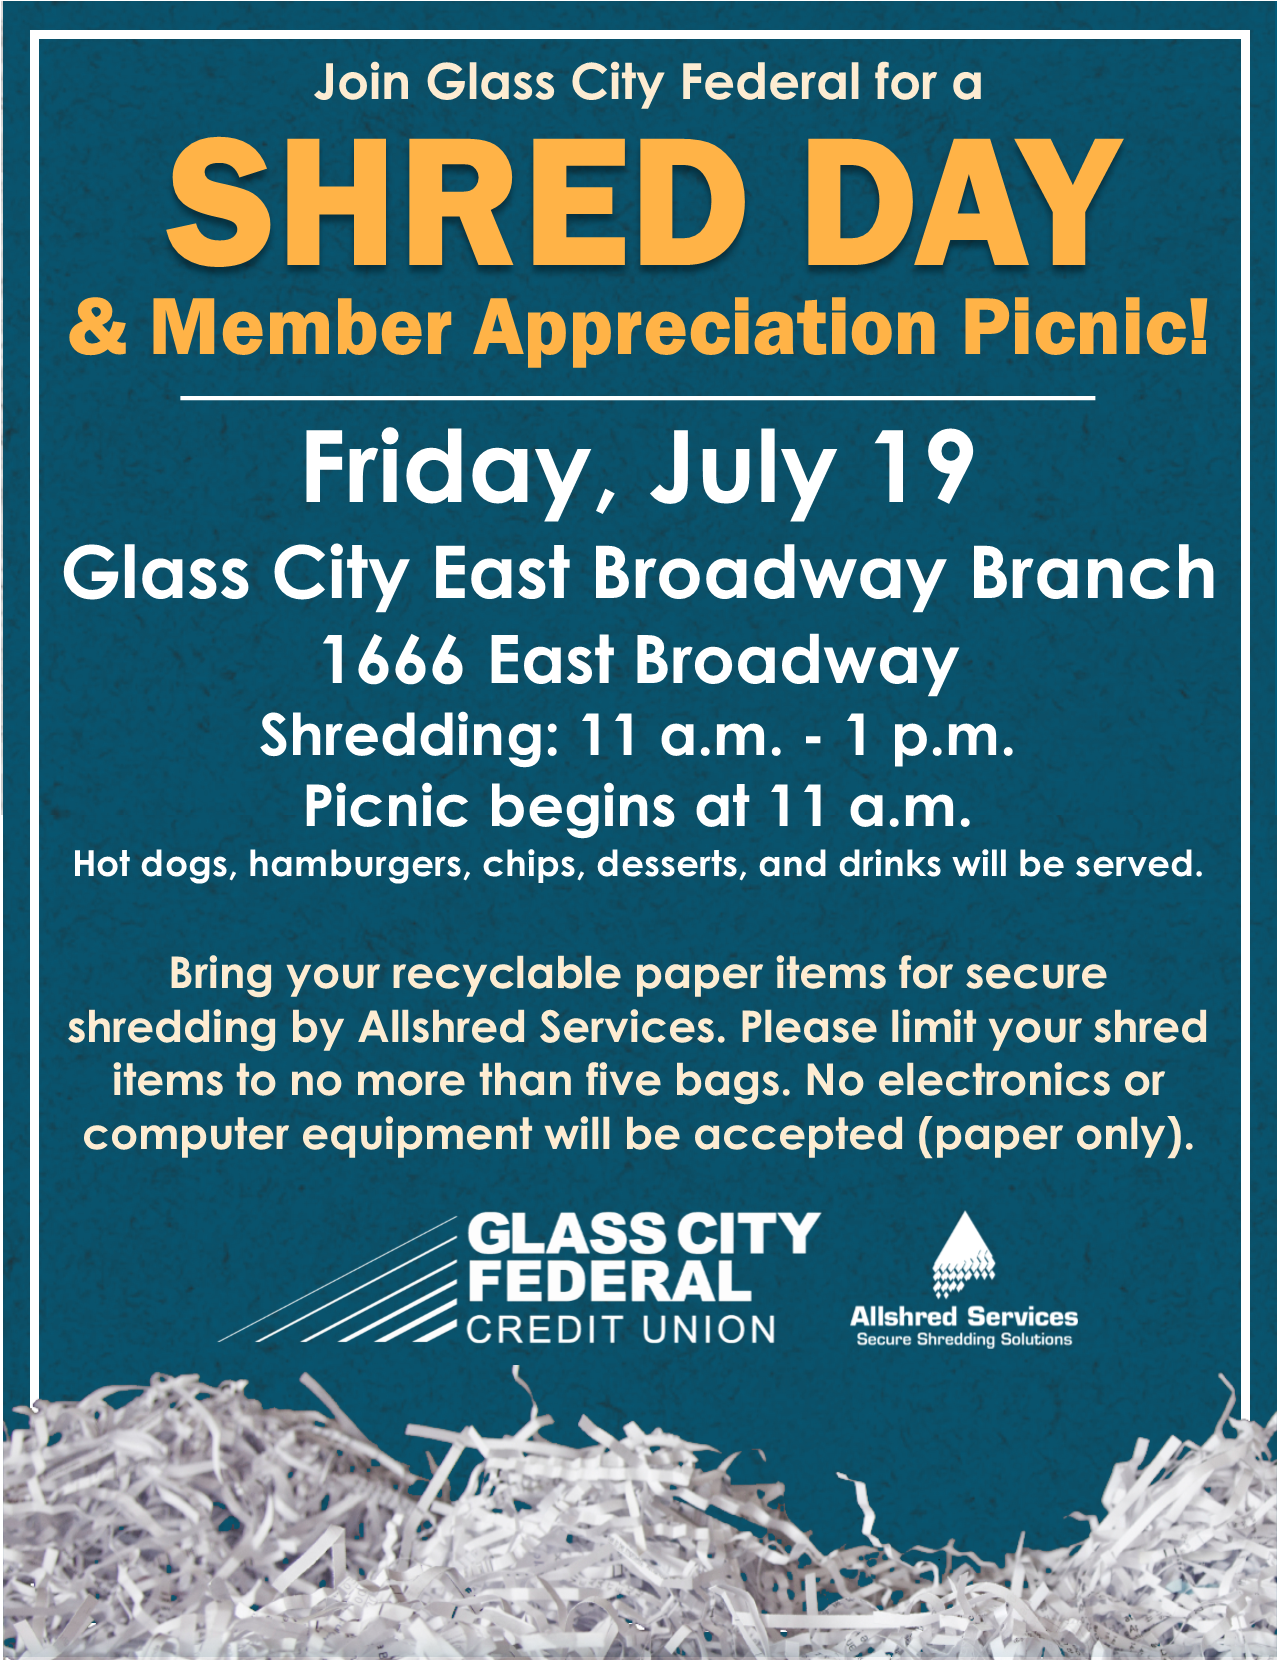 Shred Day at East Broadway Branch on July 19, 2019